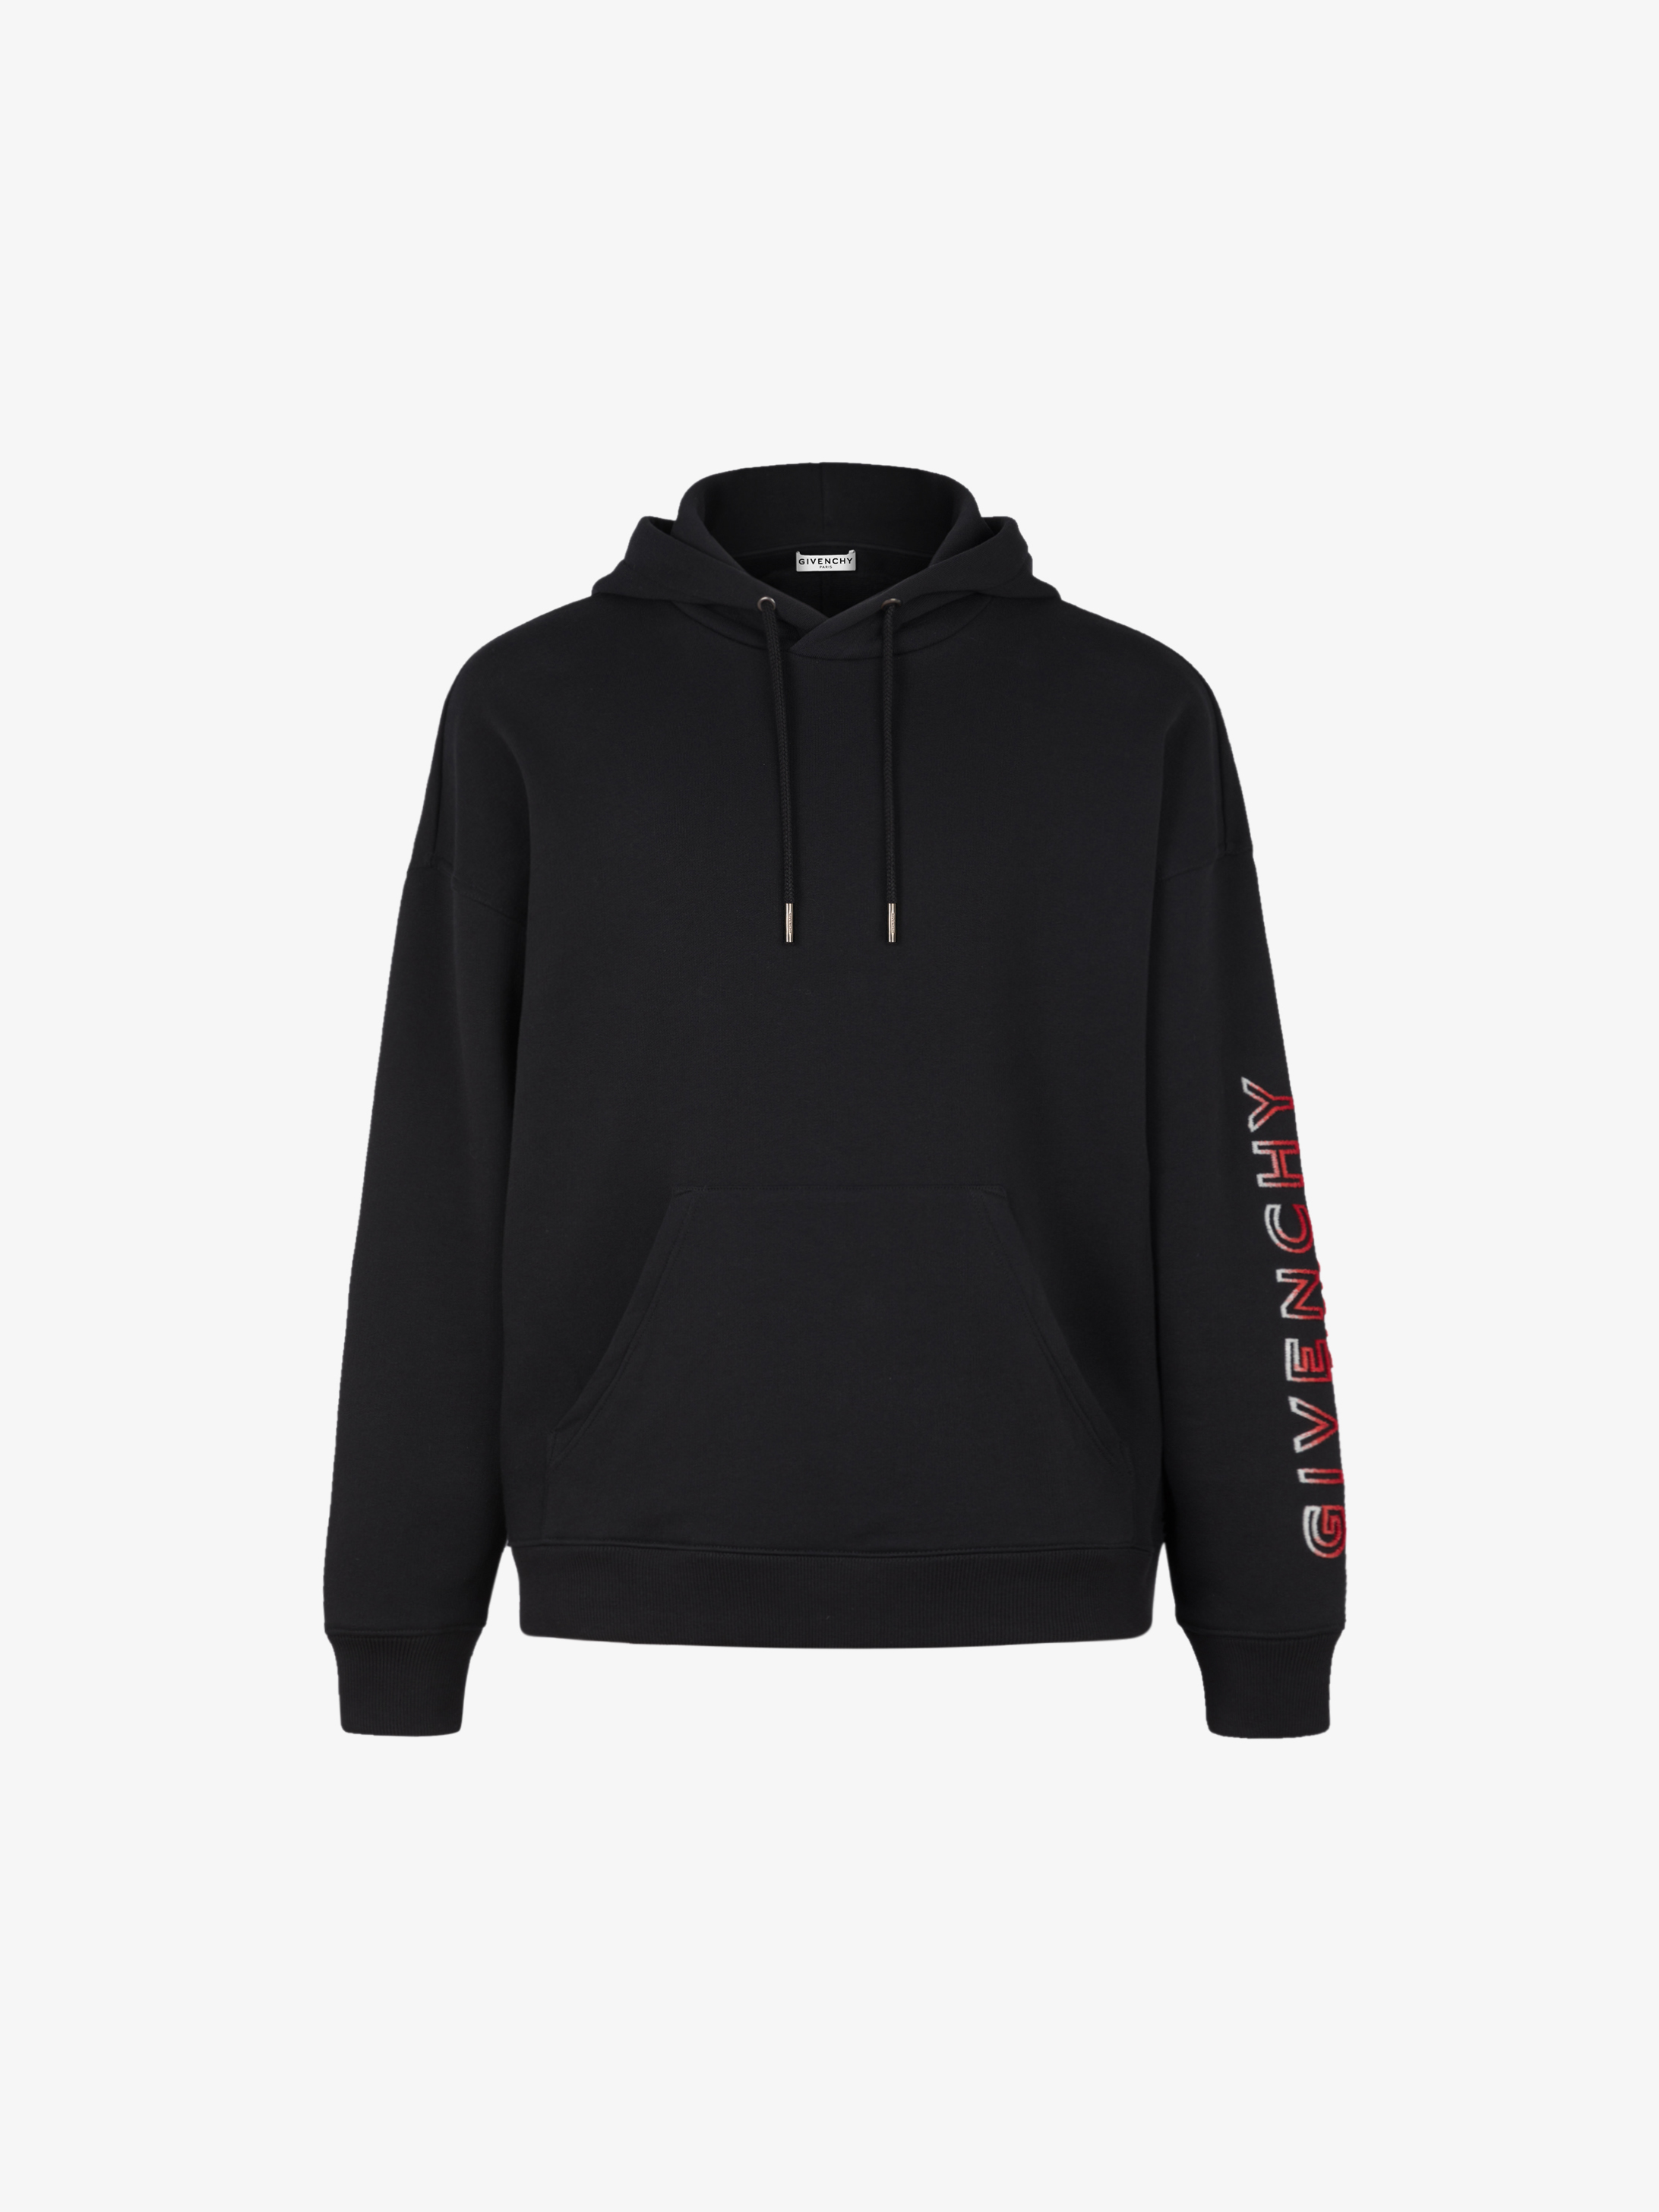 GIVENCHY faded hoodie